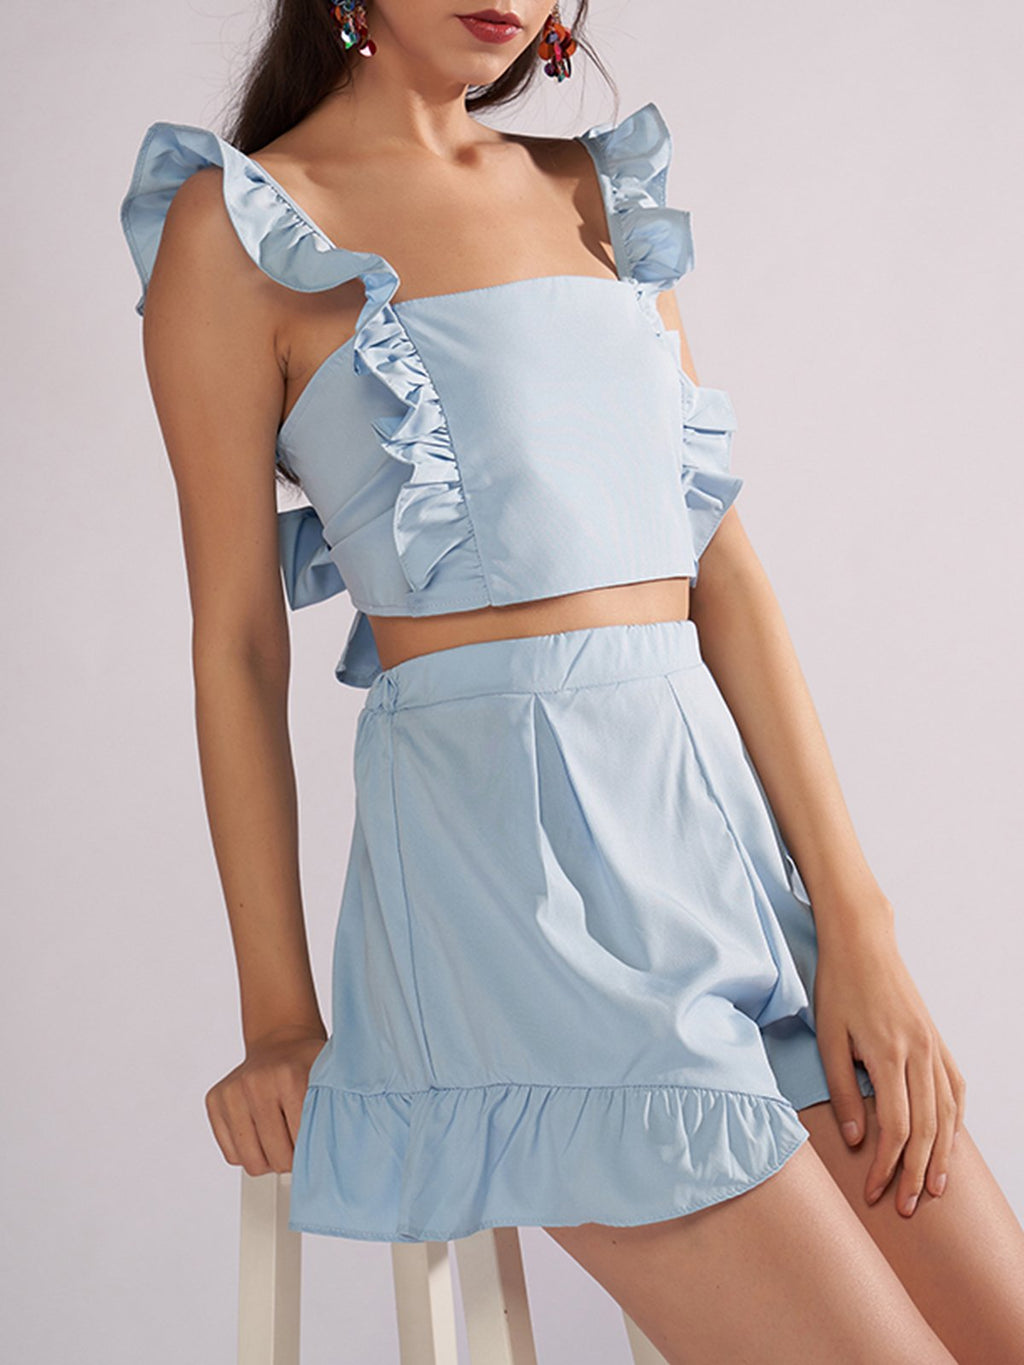 Solid Square Neck Sleeveless Ruffle Crop&Mini Skirt Two Piece Set